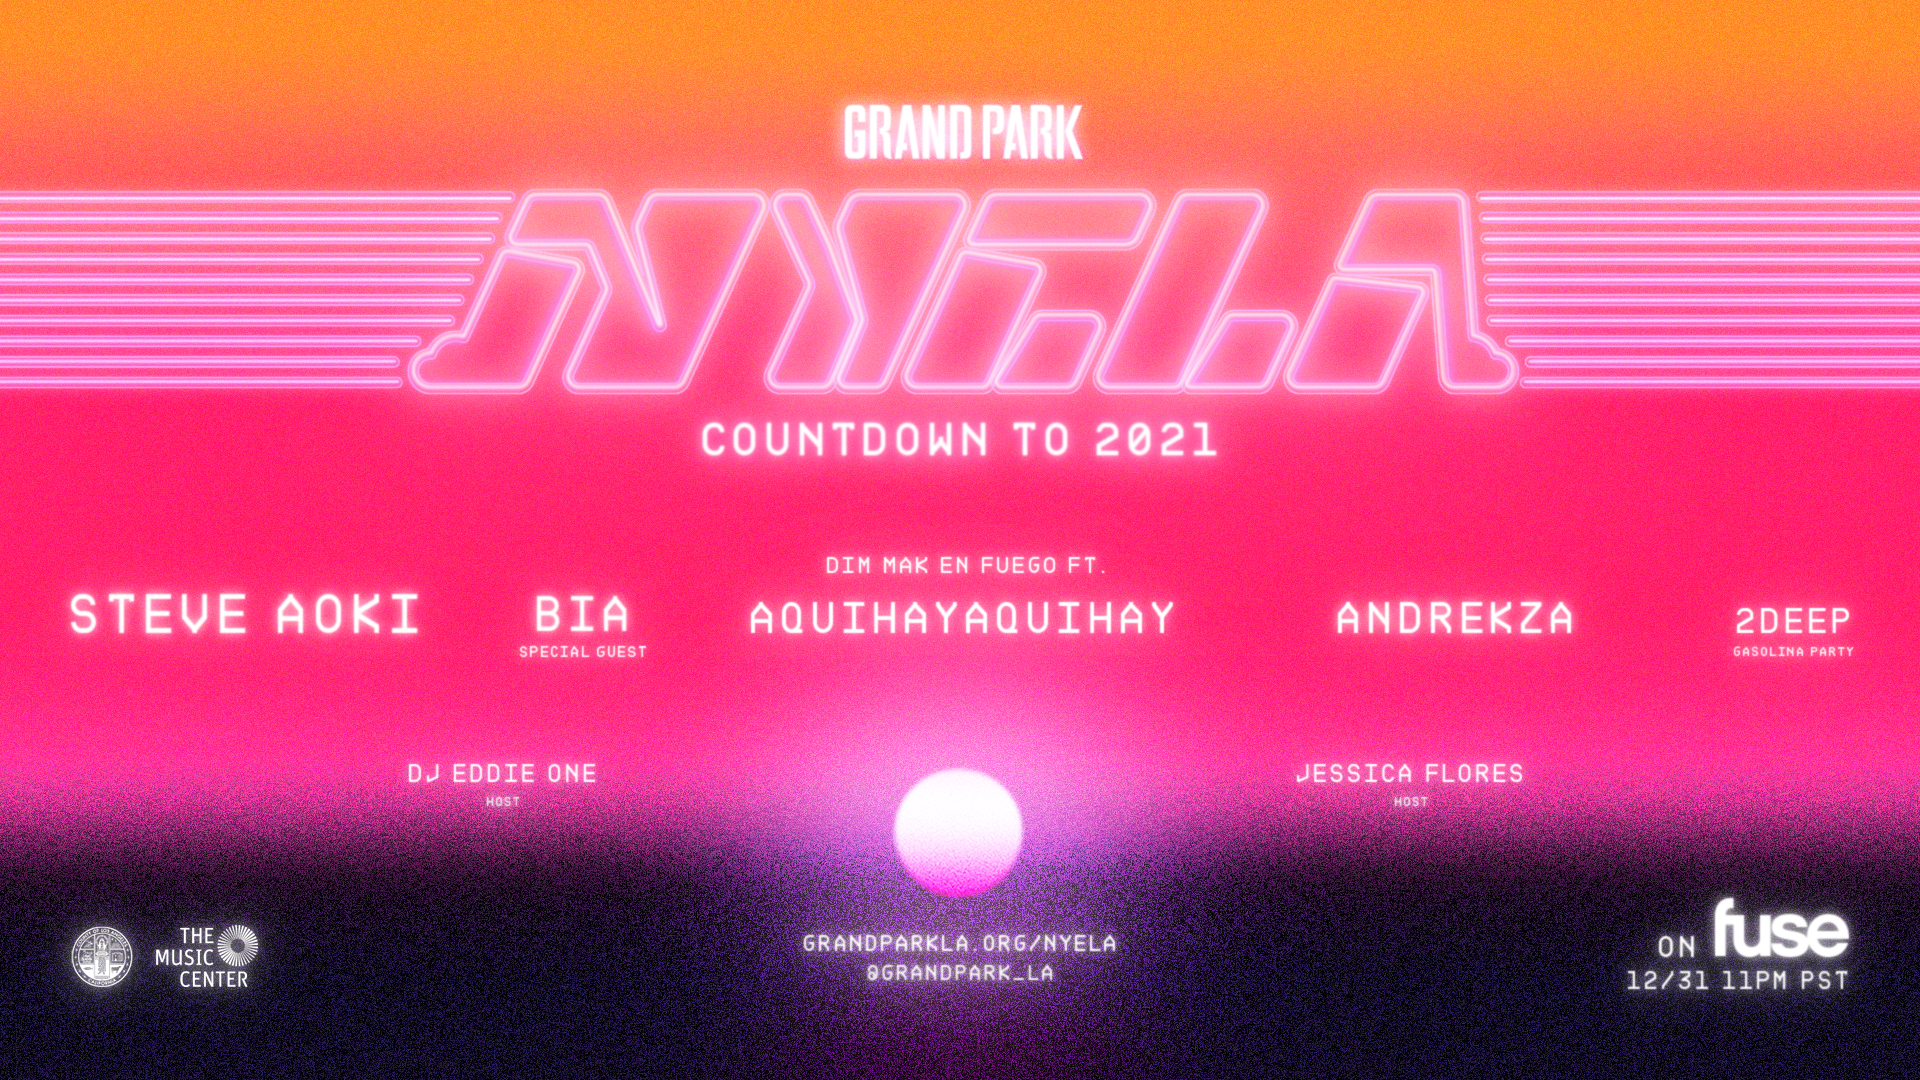 Count down to 2021 with Grand Park's NYELA 2020!